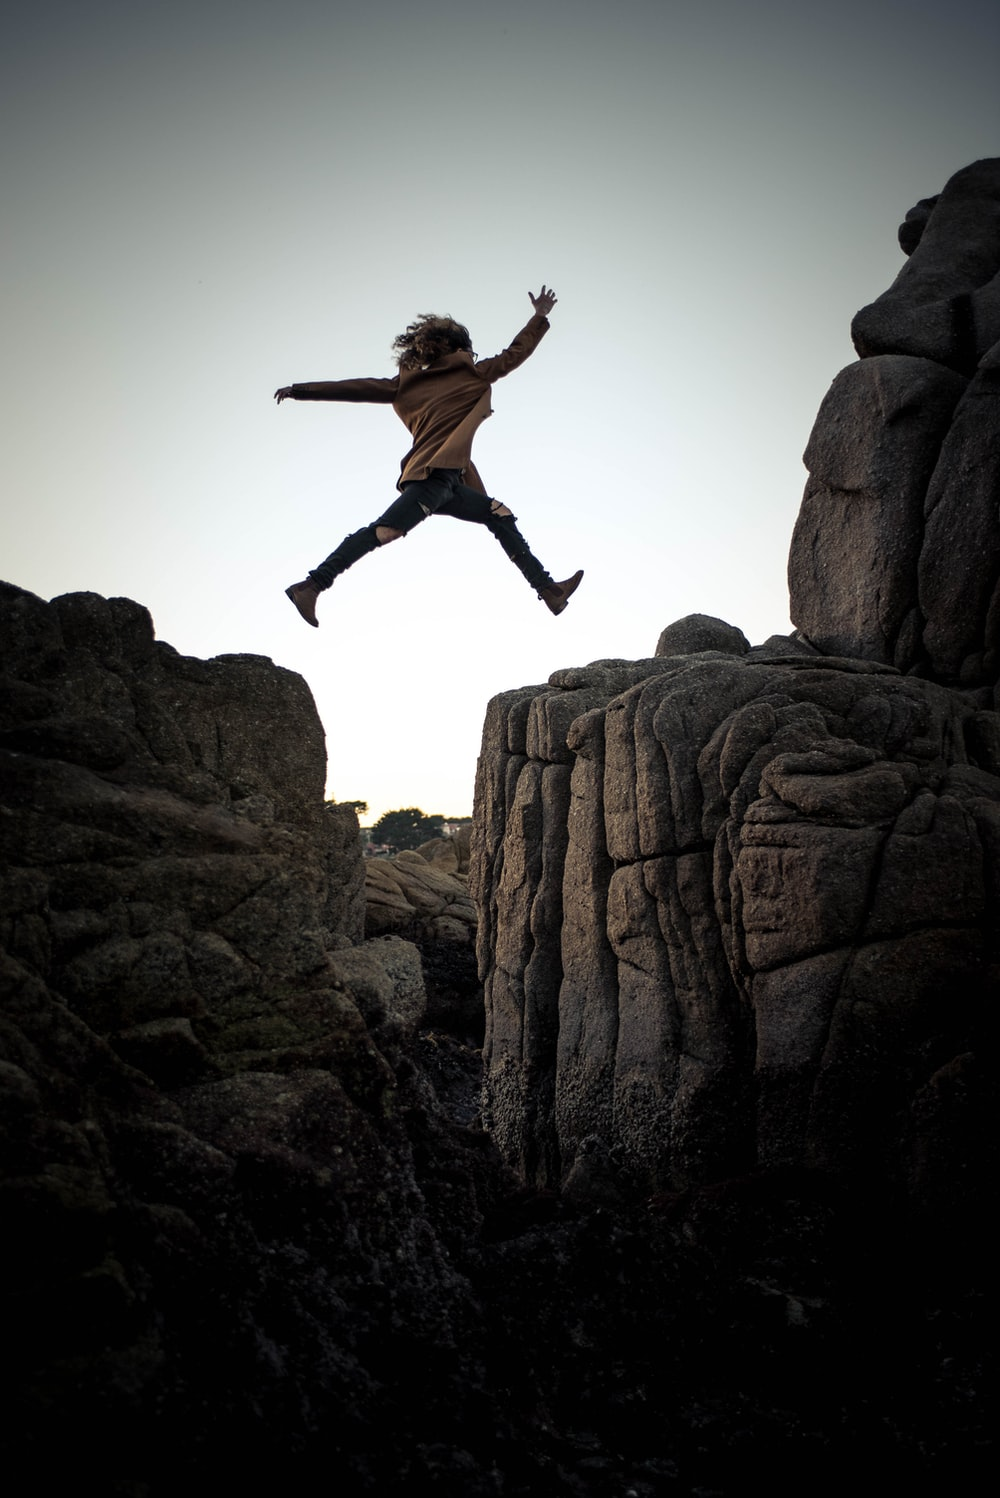 person jumping on big rock under gray and white sky during daytime